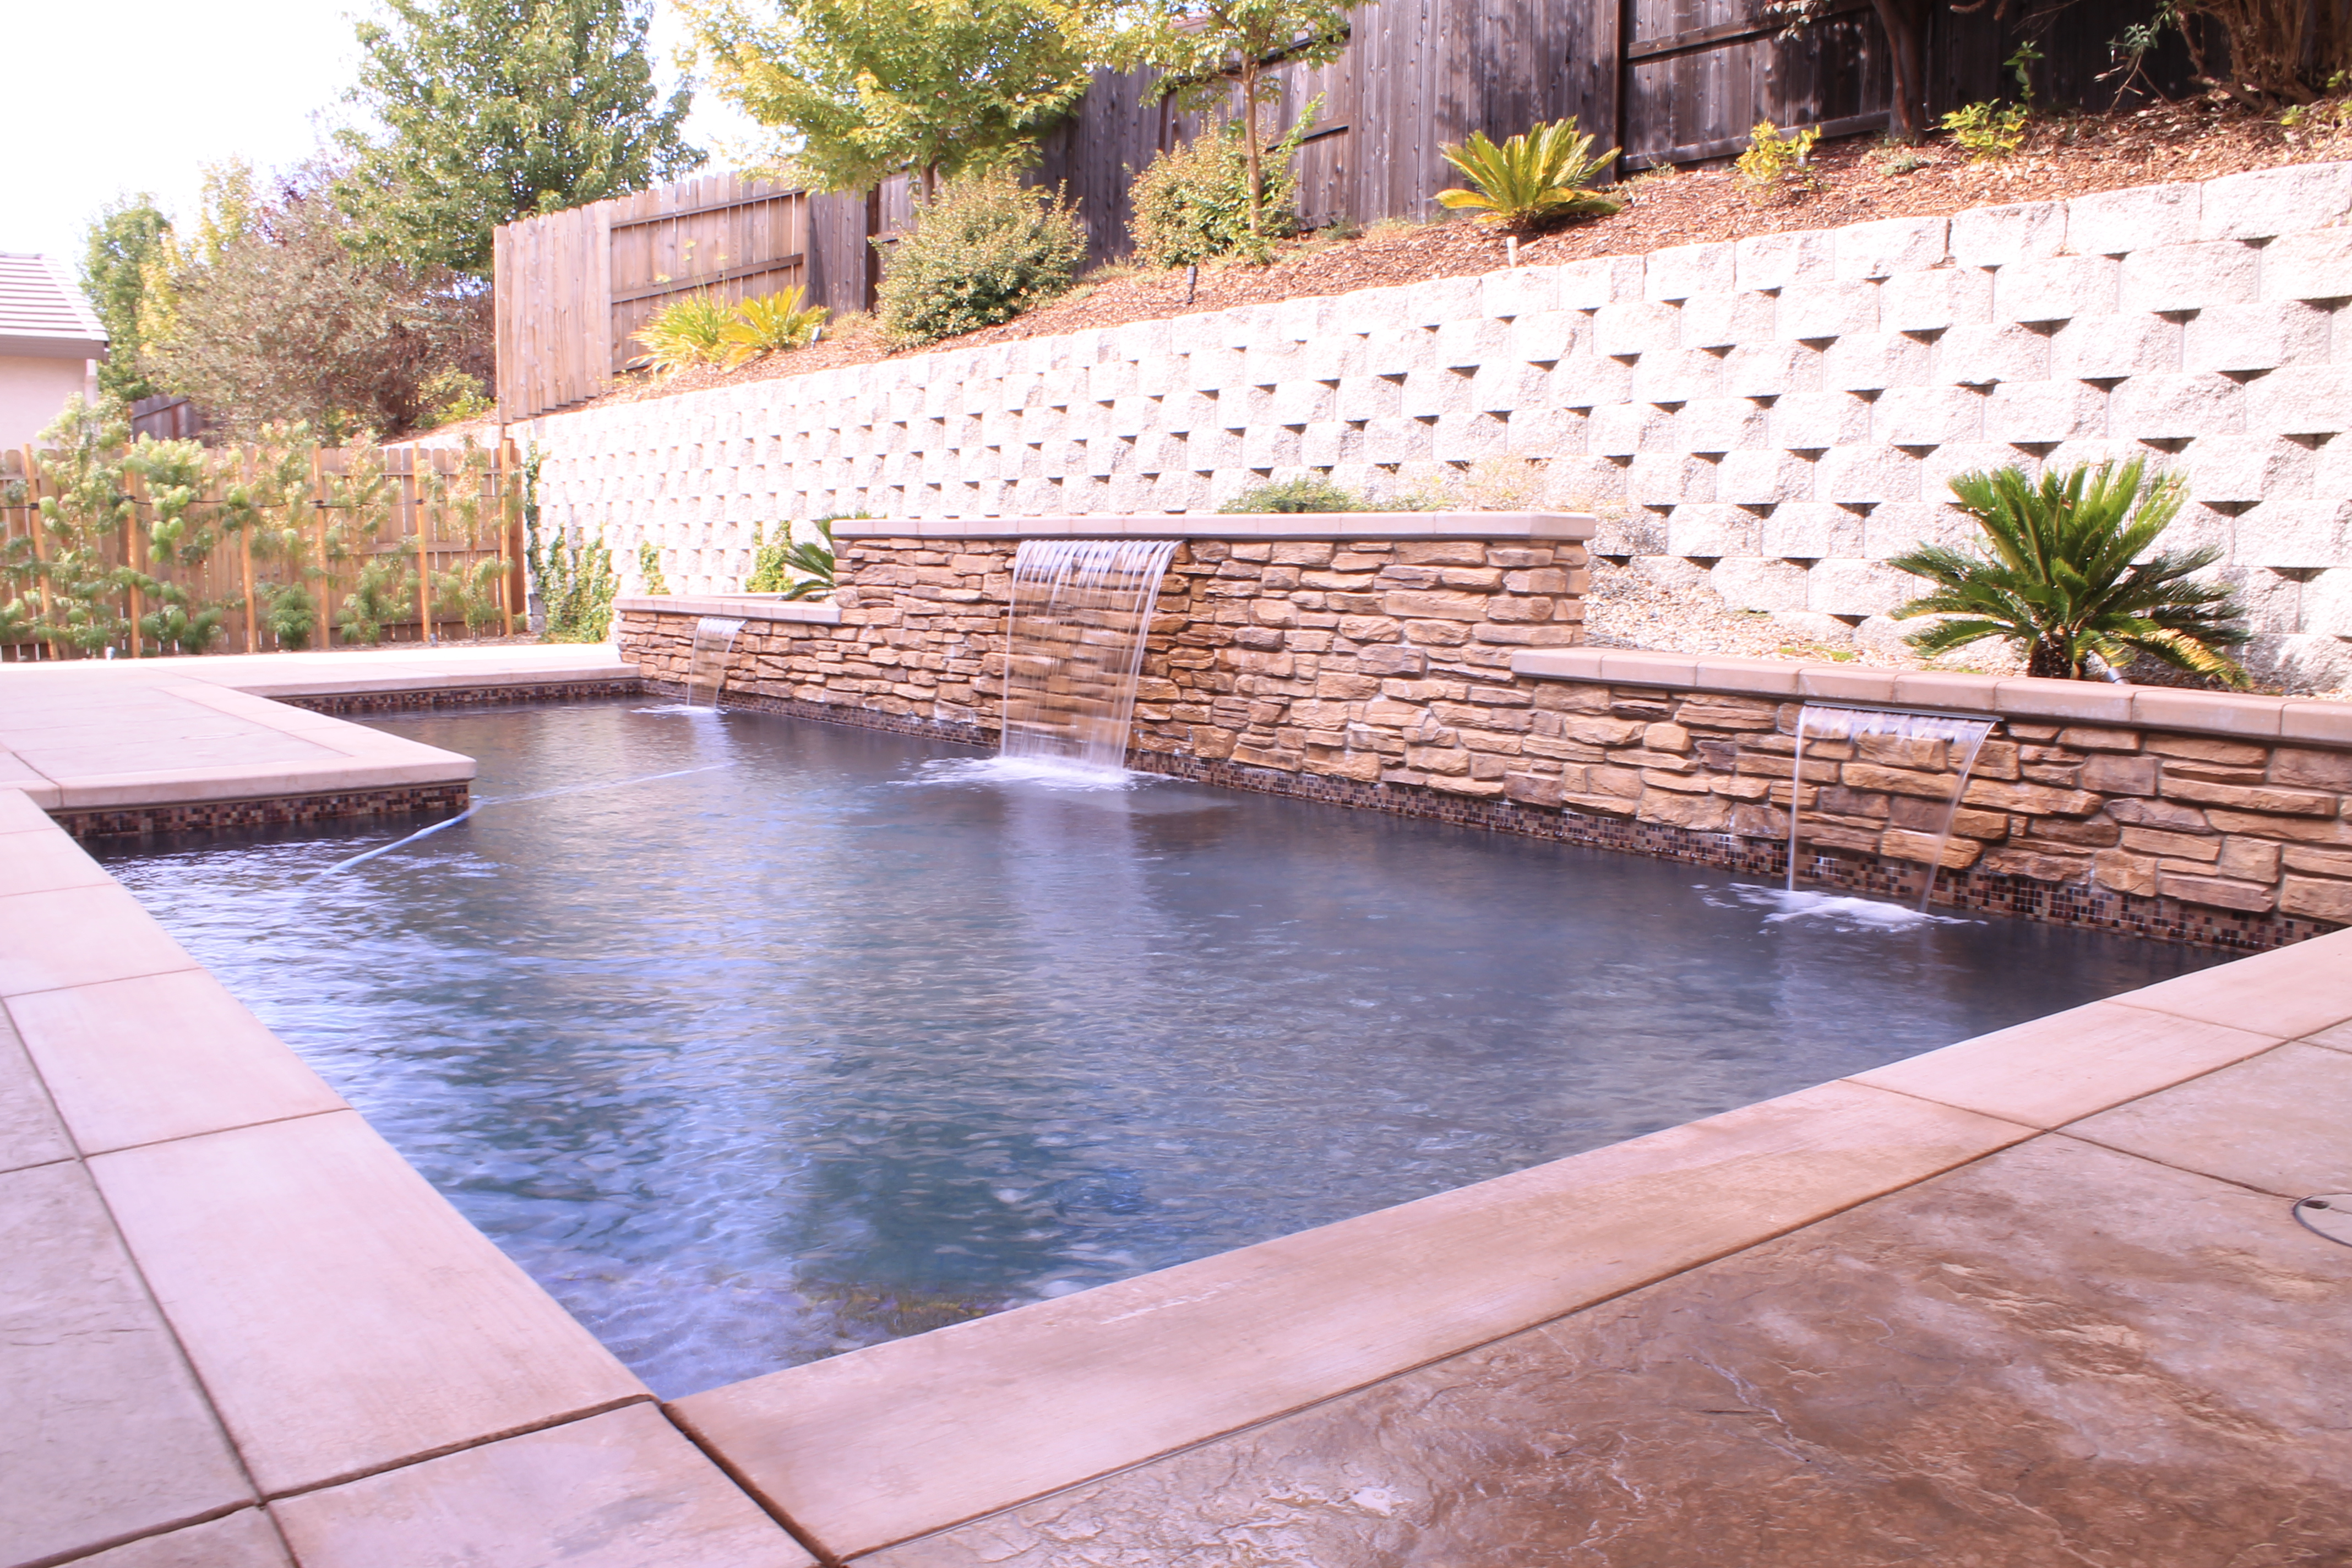 Cash Pool Celle 1000 43 Images About Pool On Pinterest Pool Houses Chevy